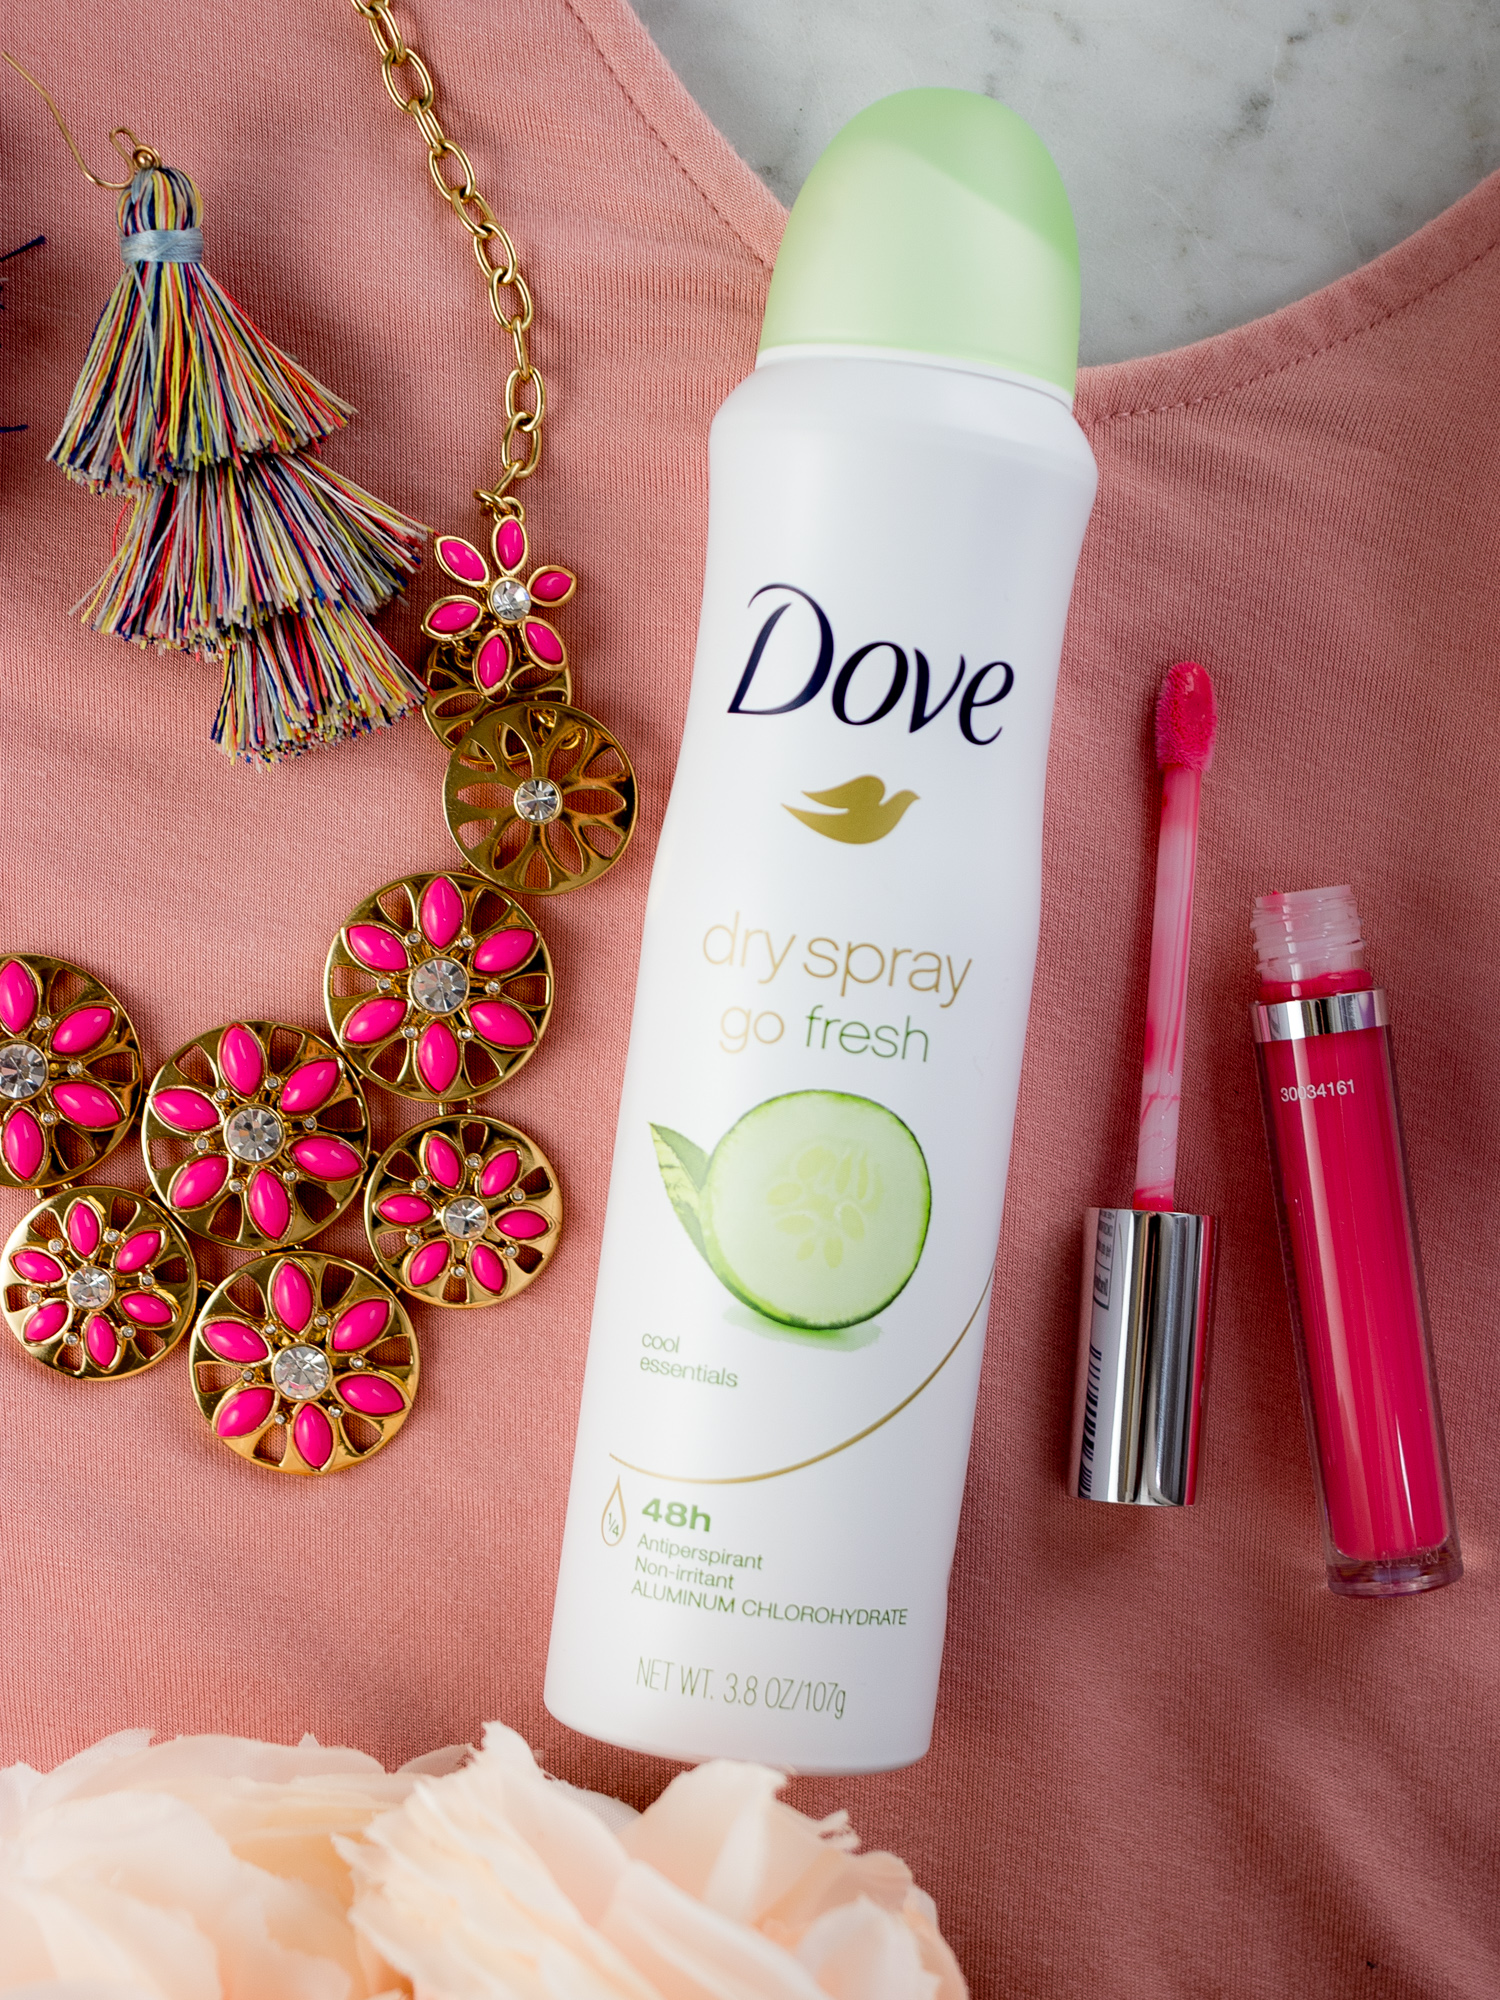 Refresh for Spring with New Clothes, Accessories and Dove Dry Spray